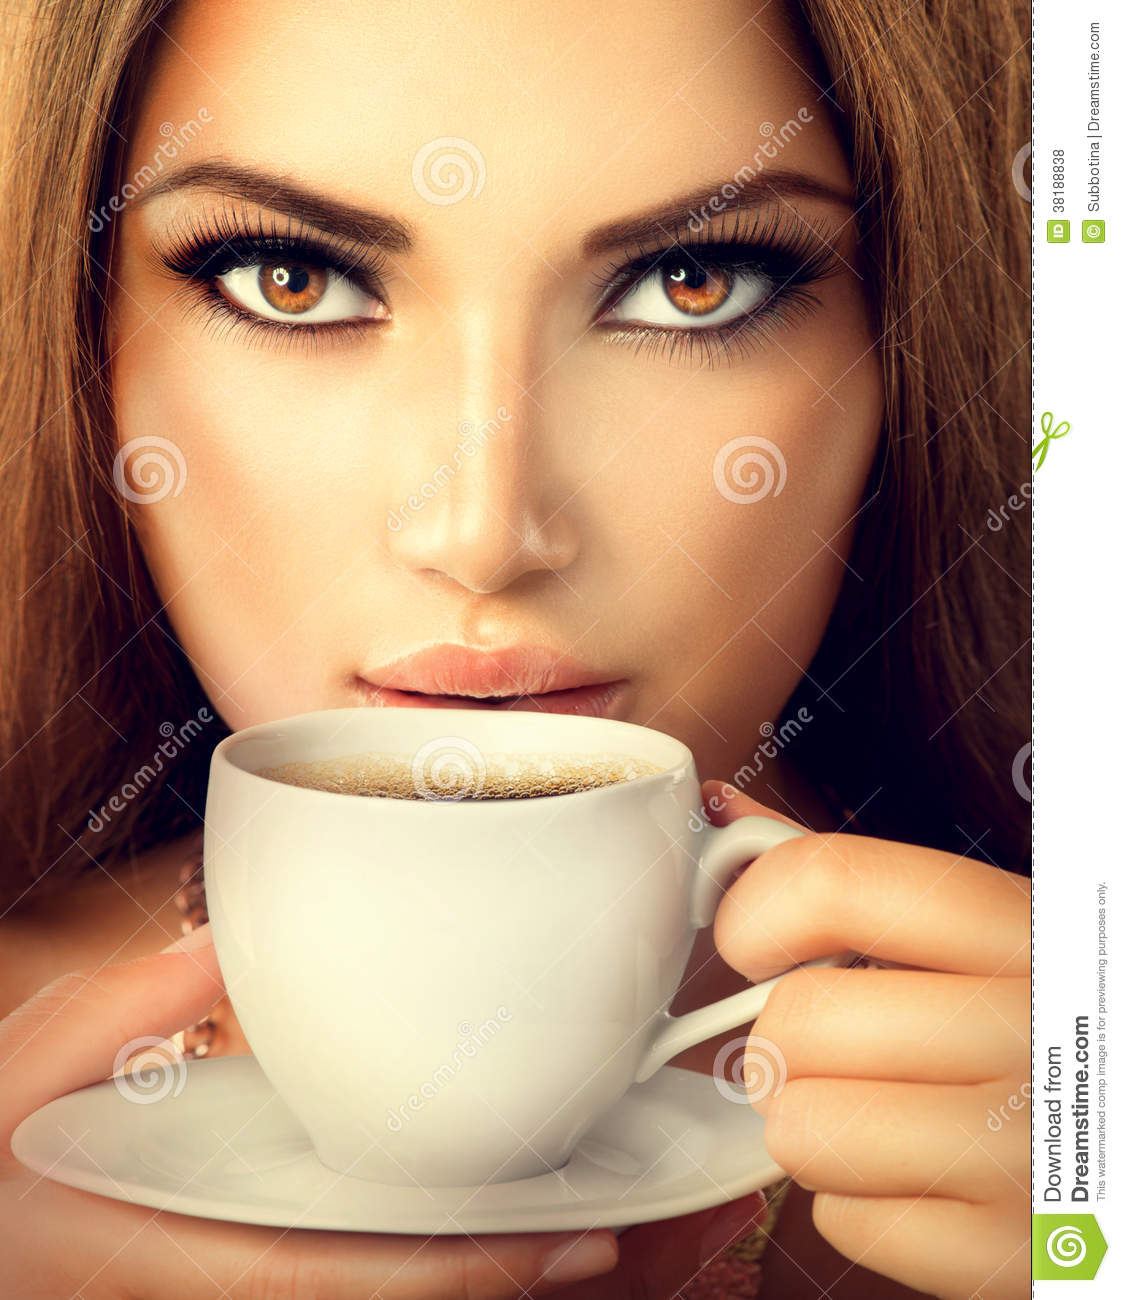 Sexy Woman Drinking Tea Or Coffee Royalty Free Stock